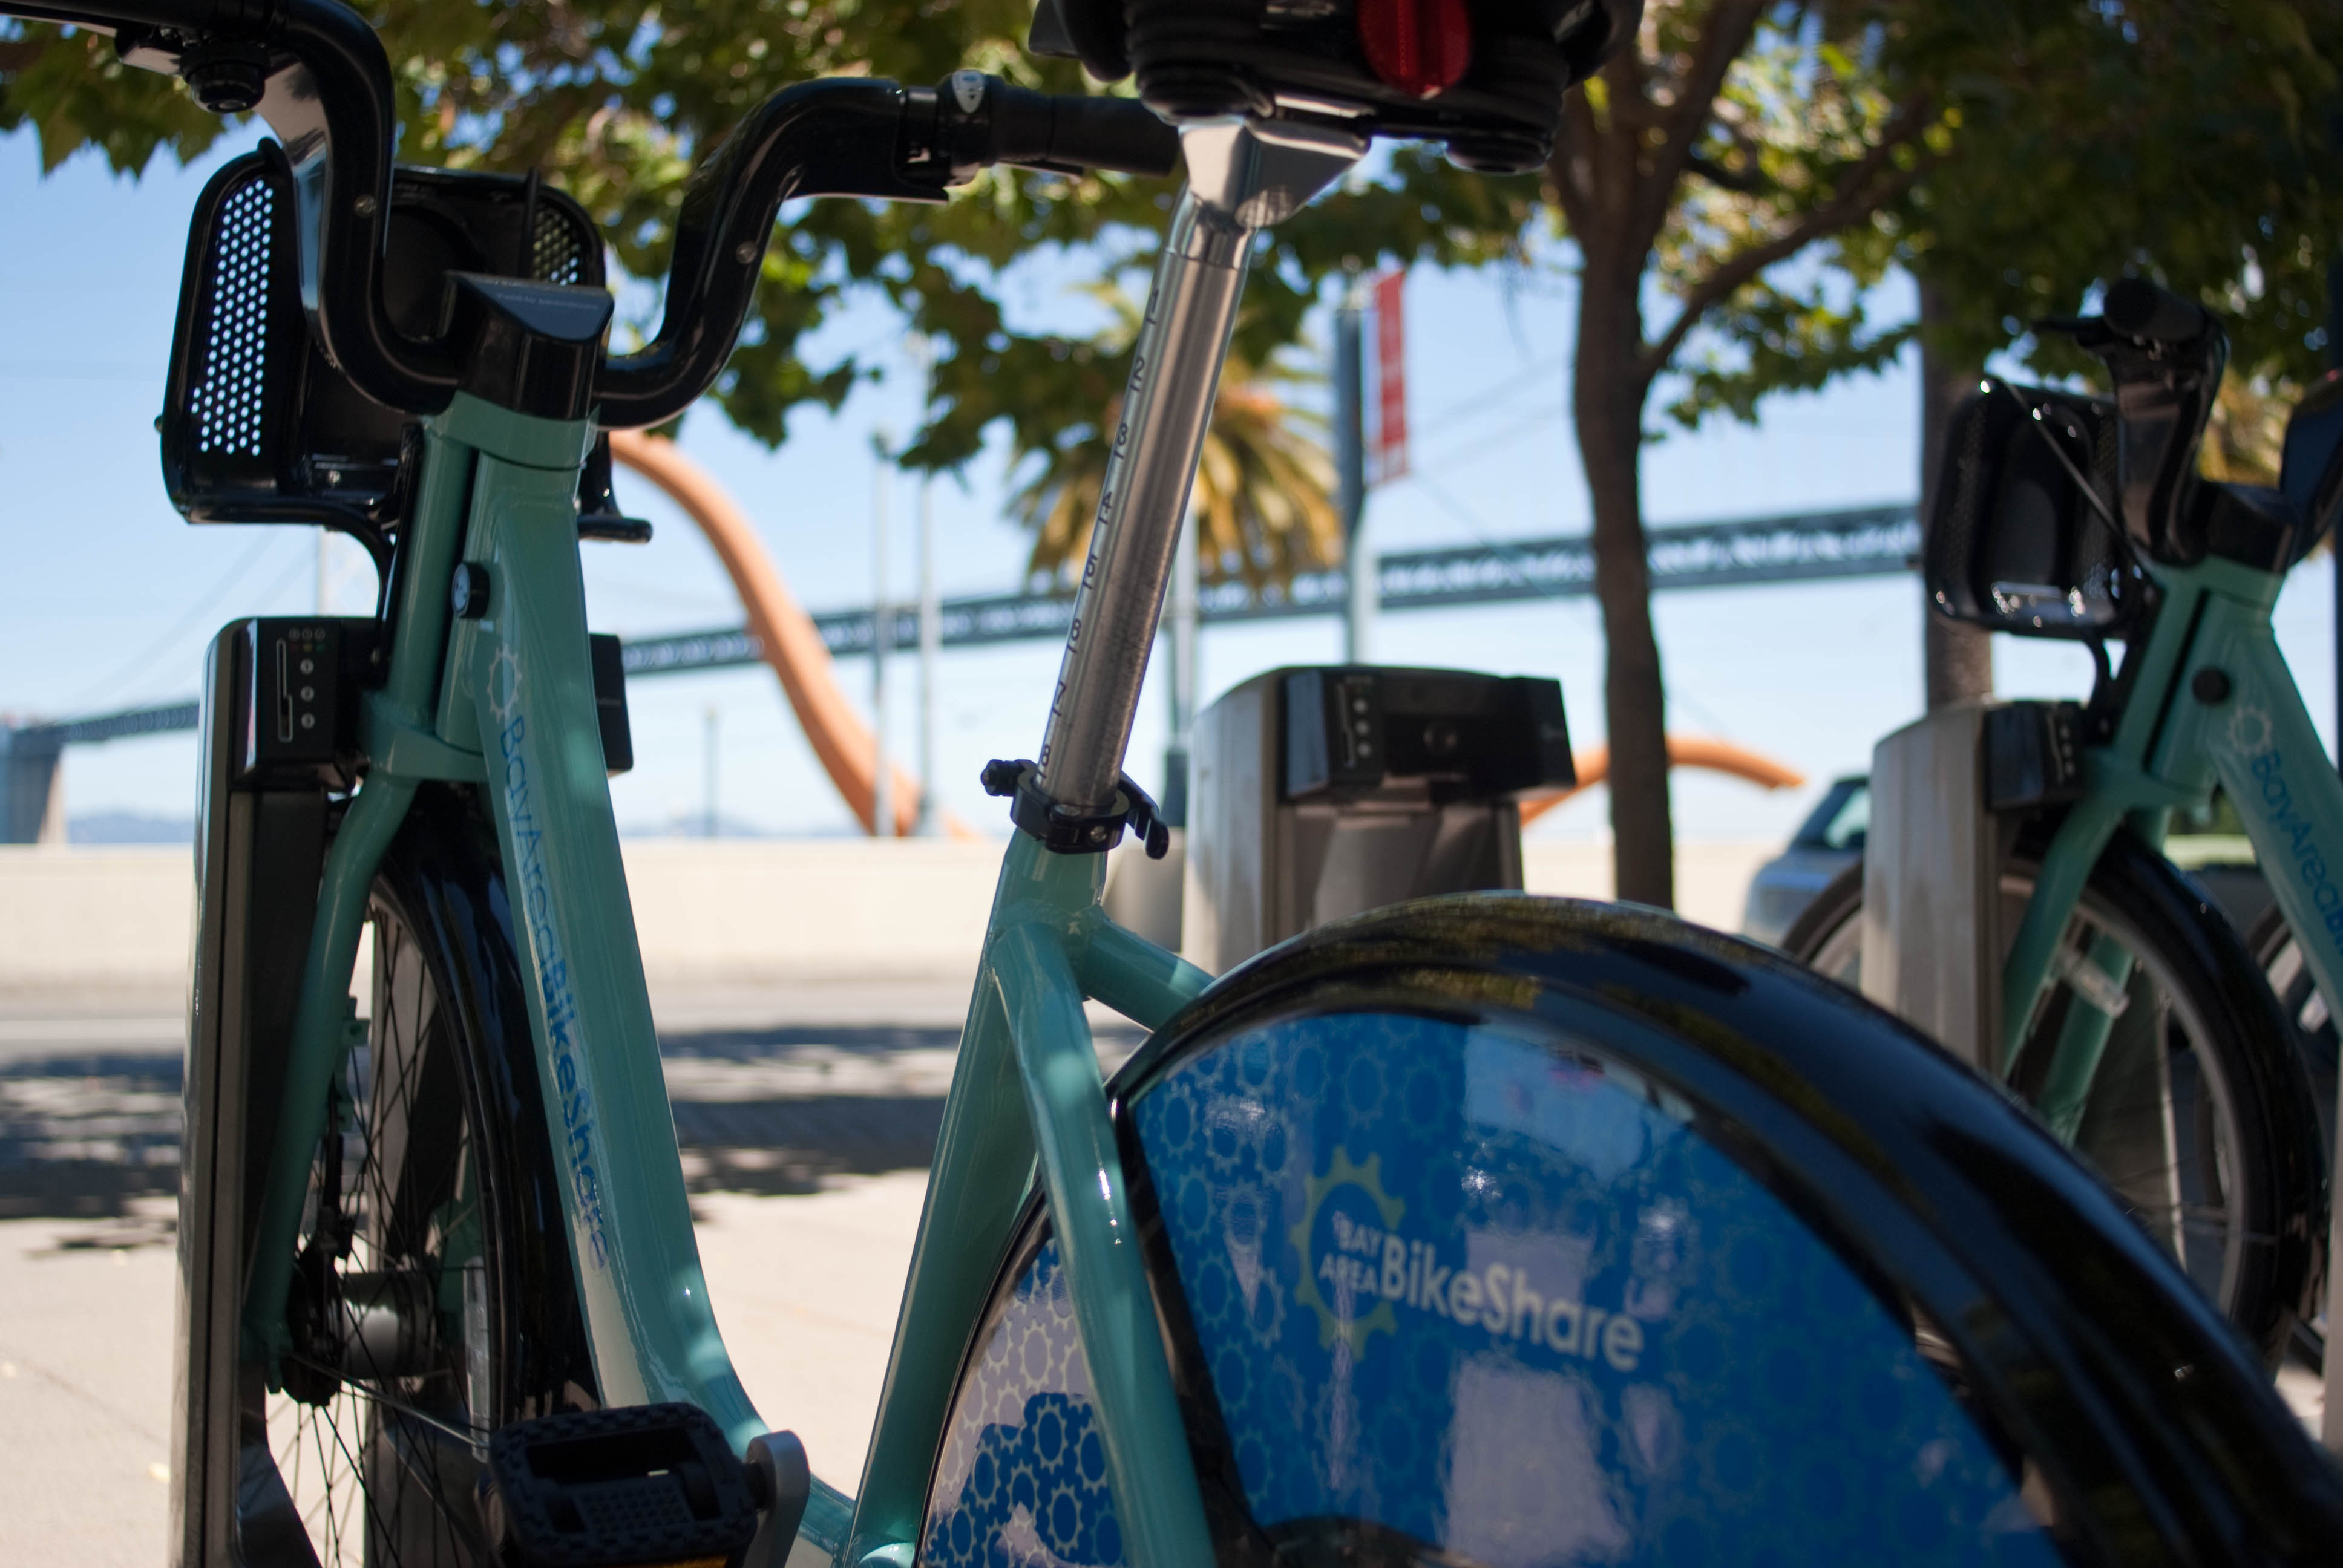 20600 In 11. Embarcadero at Folsom - Bow and Seatpost